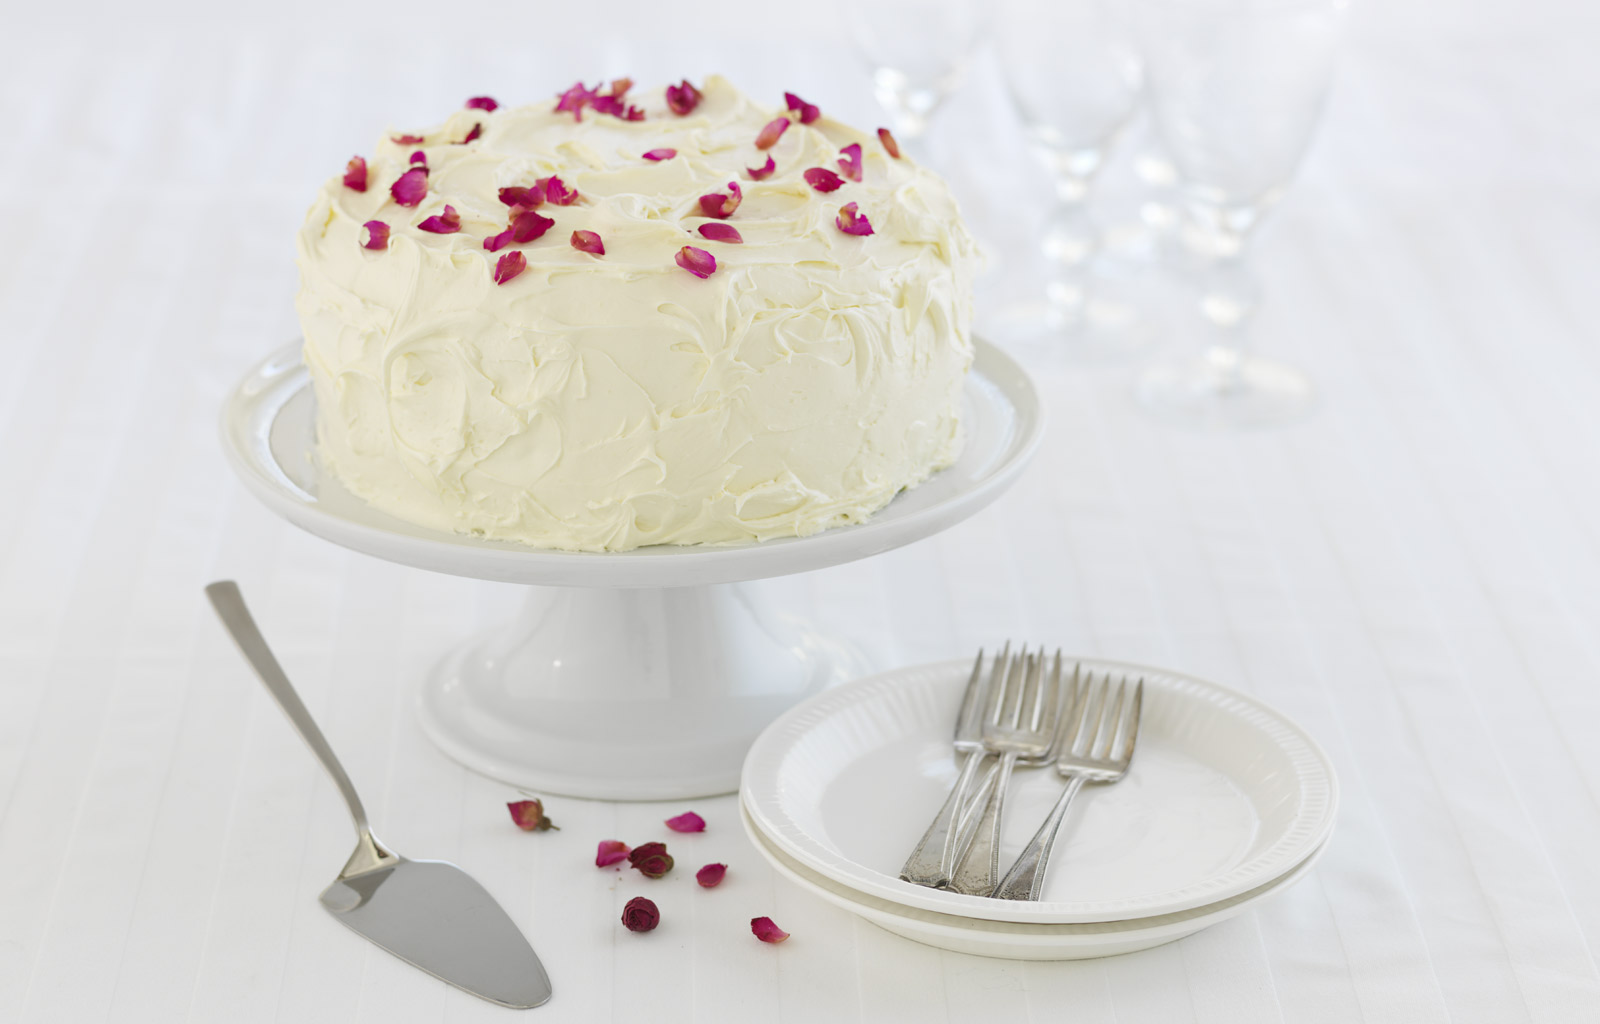 Red Velvet, Raspberry White Chocolate Ice Cream Cake | Ice ...